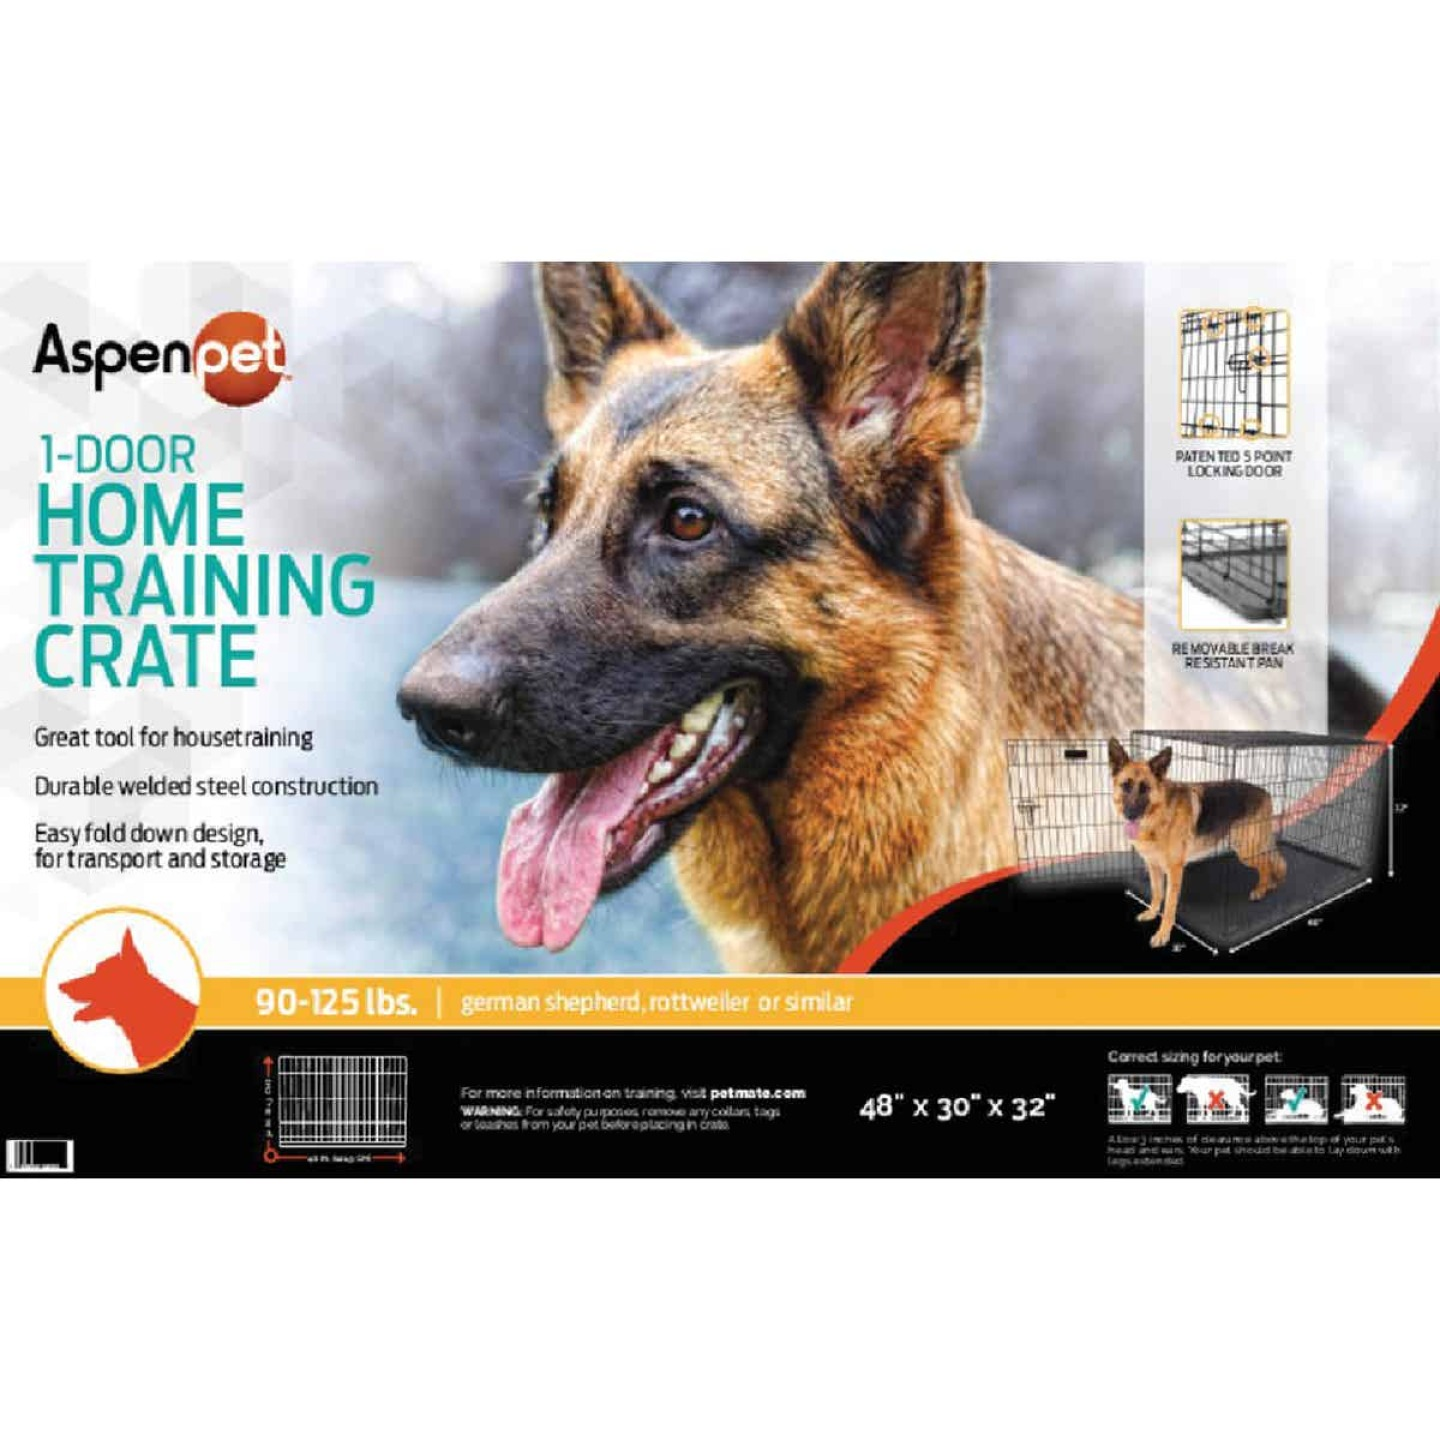 Petmate Aspen Pet 29.3 In. W. x 31 In. H. x 43.4 In. L. Heavy-Gauge Wire Indoor Training Dog Crate Image 2